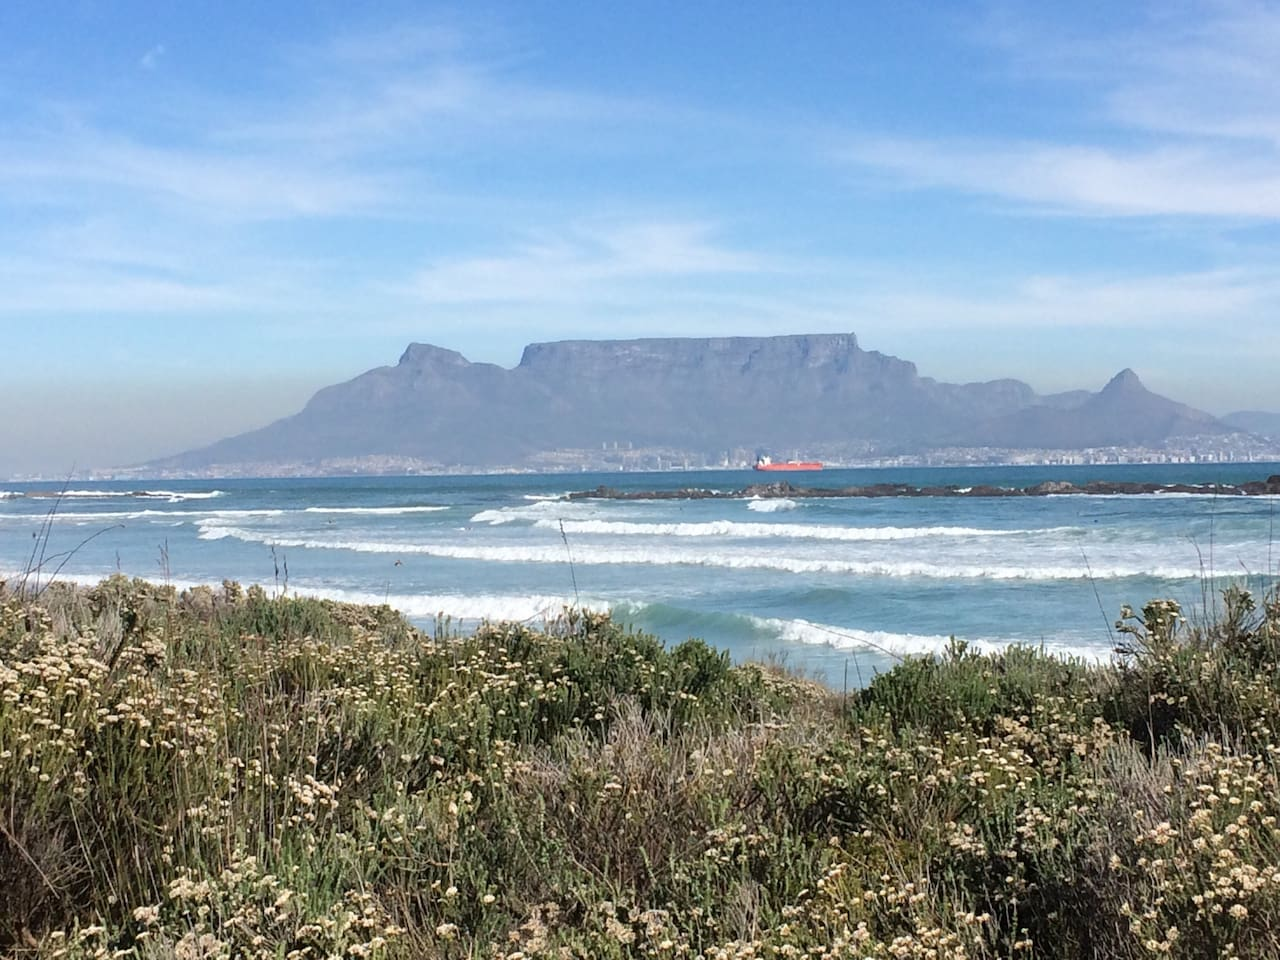 Lovely Table Mountain view from the beach